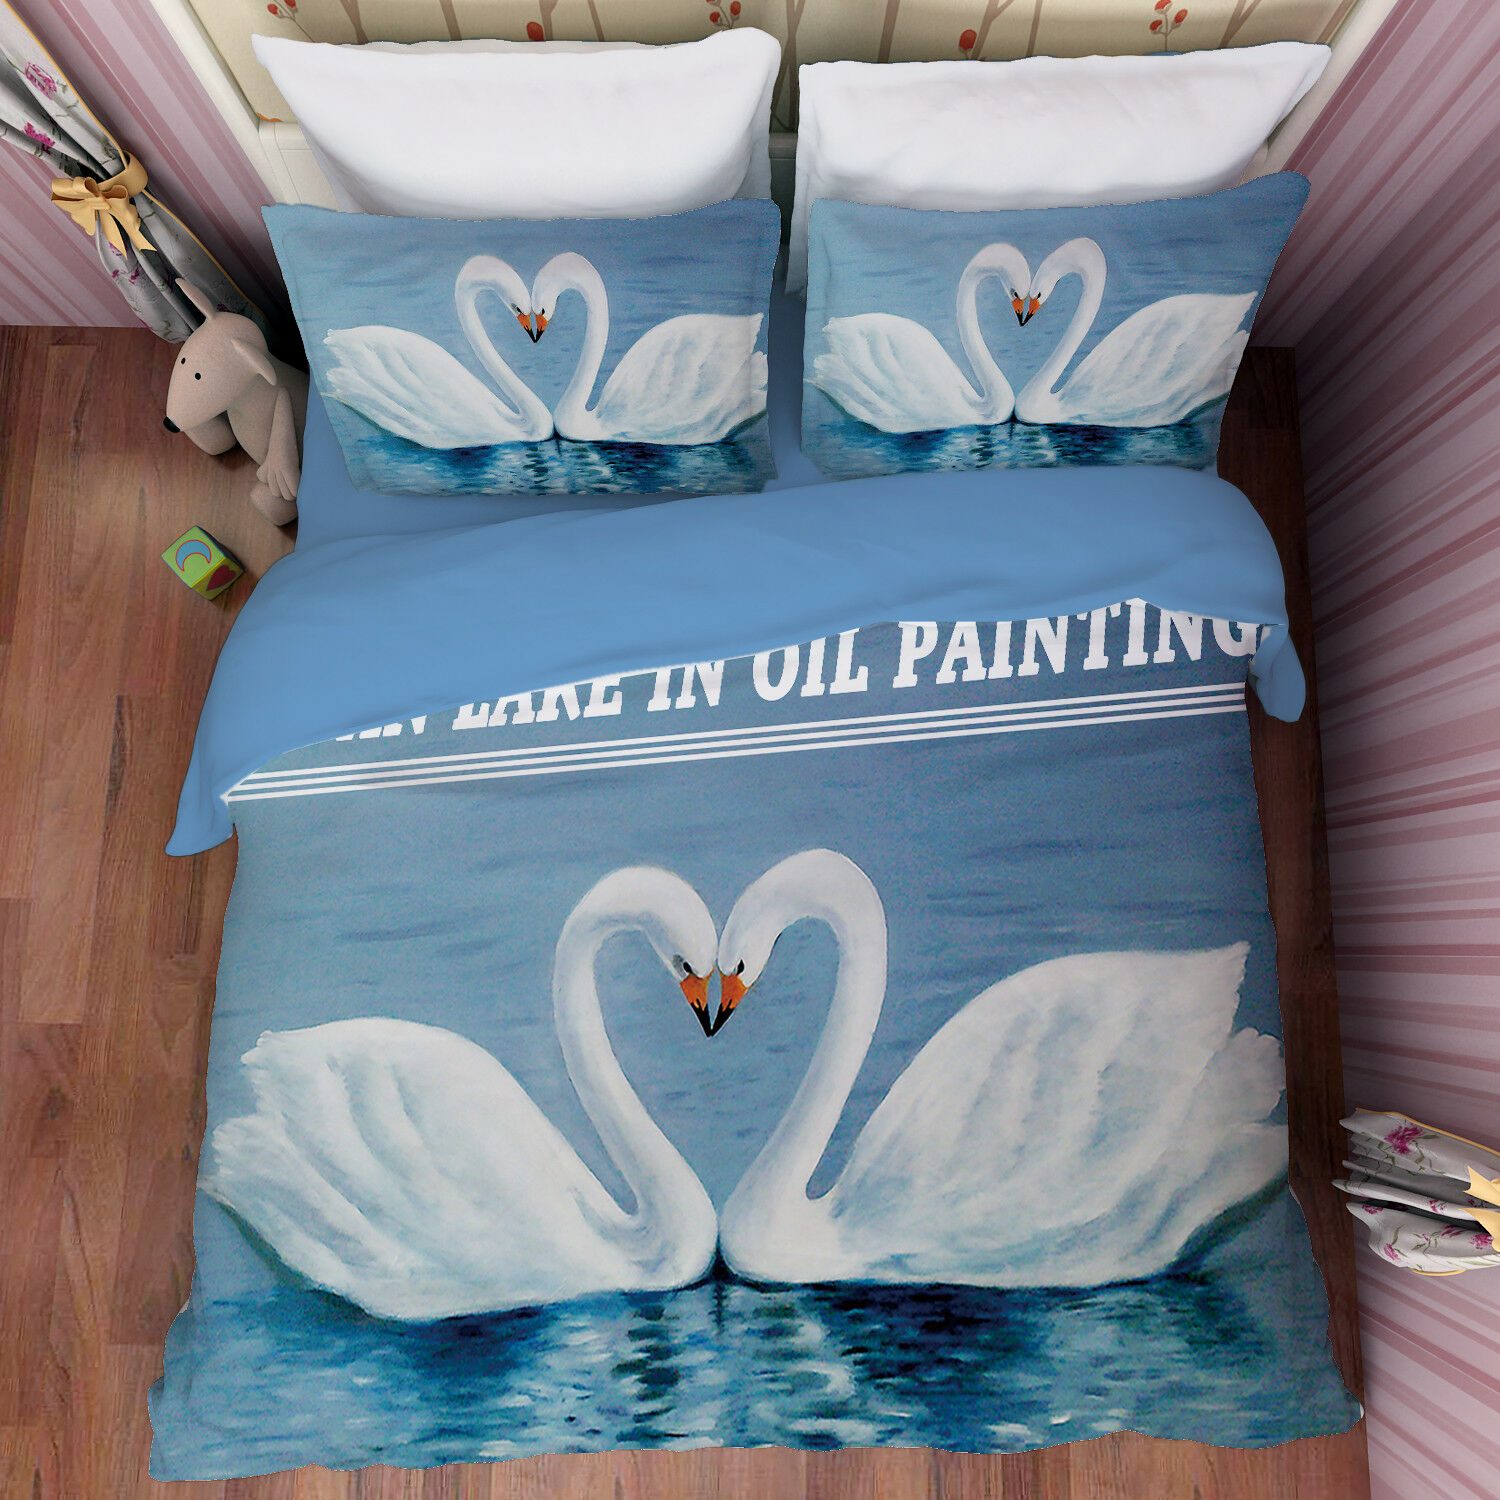 3D Swan Lake Water 8 Bed Pillowcases Quilt Duvet Cover Set Single Queen AU Carly